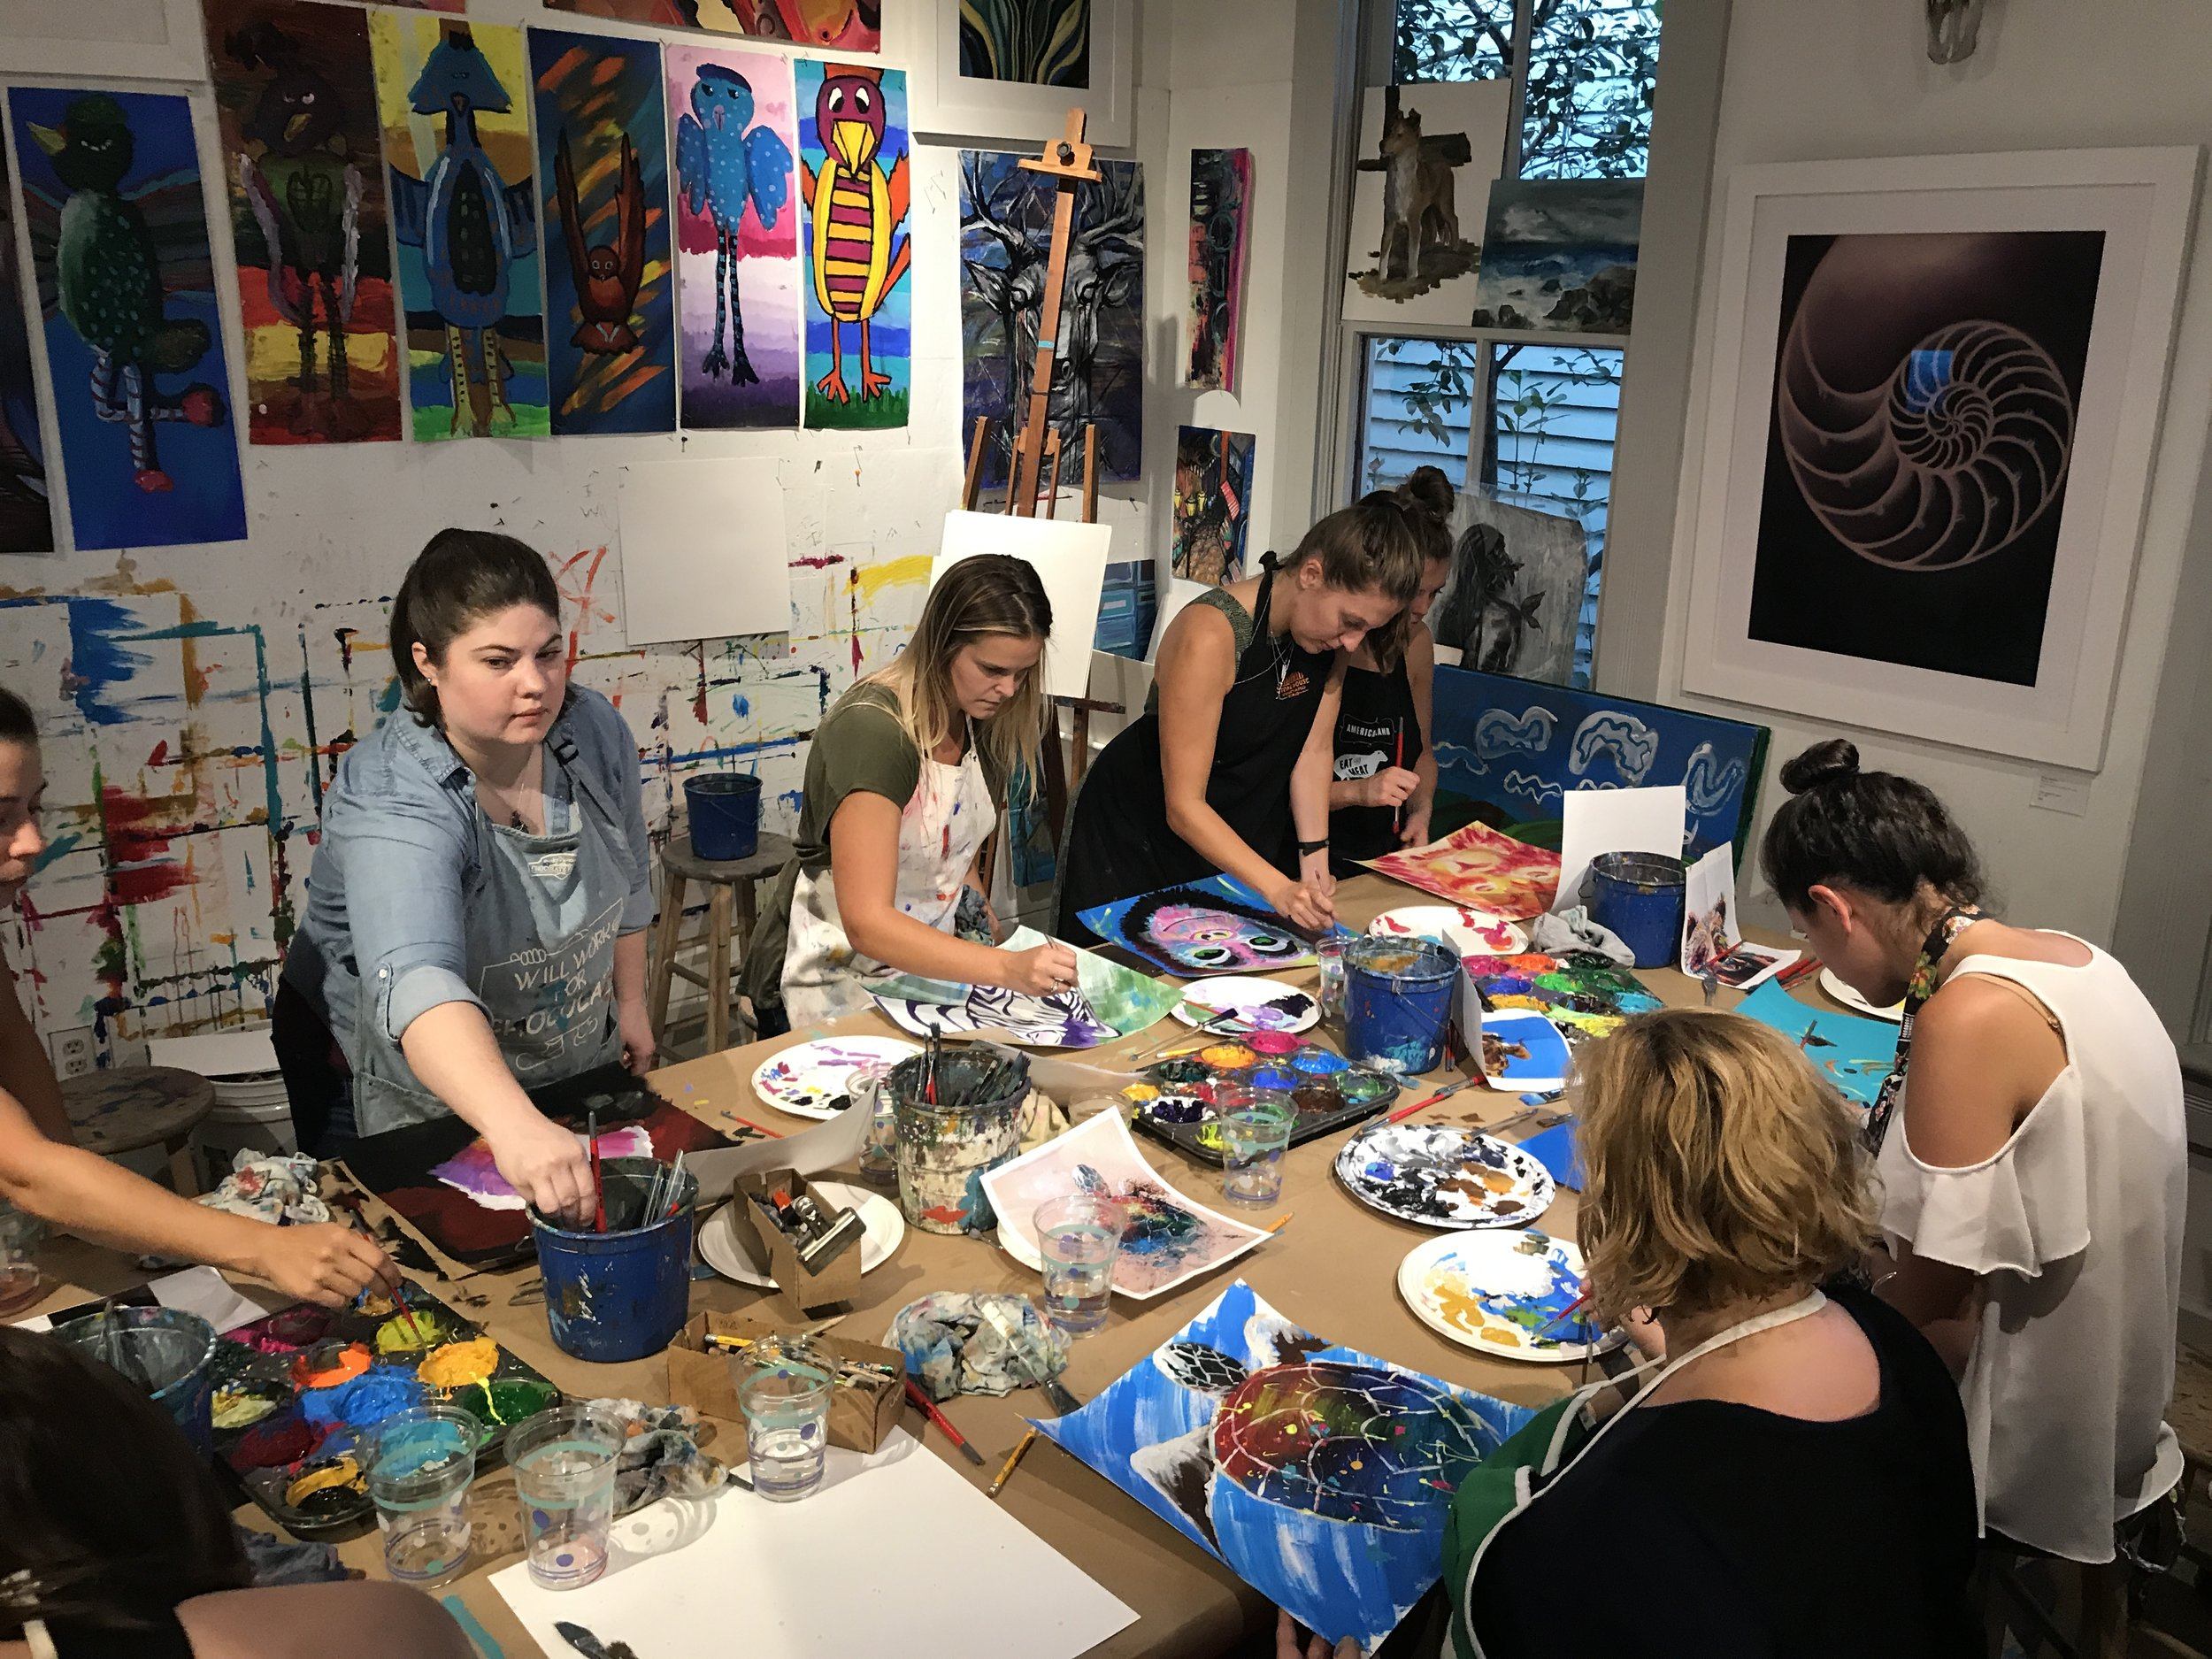 GROUP OR CORPORATE EVENTS - ACAC's Custom Art Experiences ignite creativity and empower teammates. As co-workers collaborate on various art projects they are pushed to discover BIG ideas to bring success to your business and bring your team closer together.